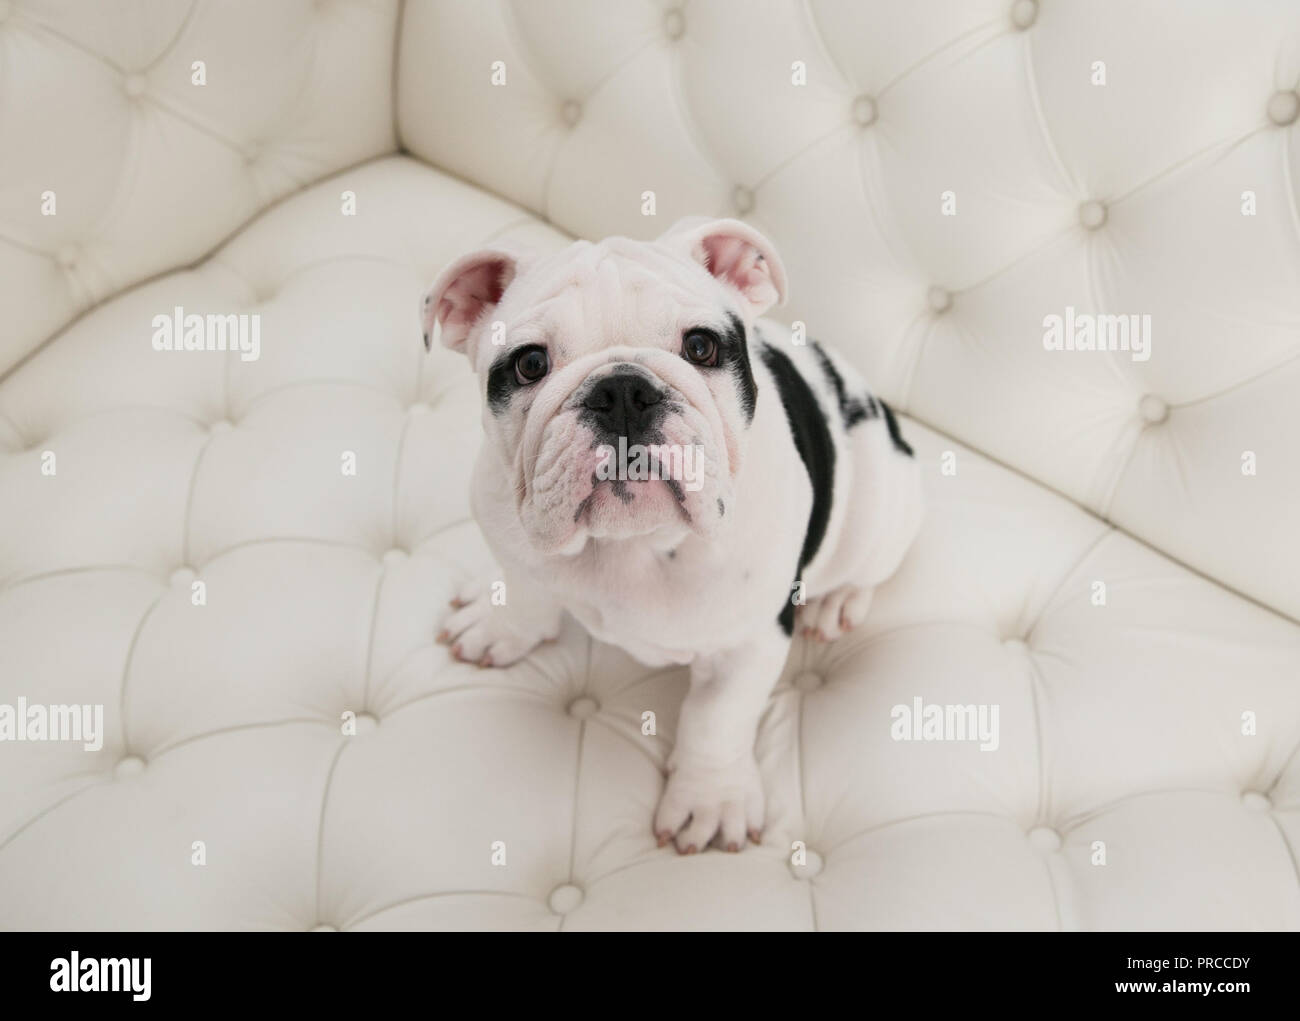 Black & white baby bulldog puppy dog sits up on a modern pleated couch. He is looking upwards.  He has a bit of a head tilt. Camera is looking down - Stock Image